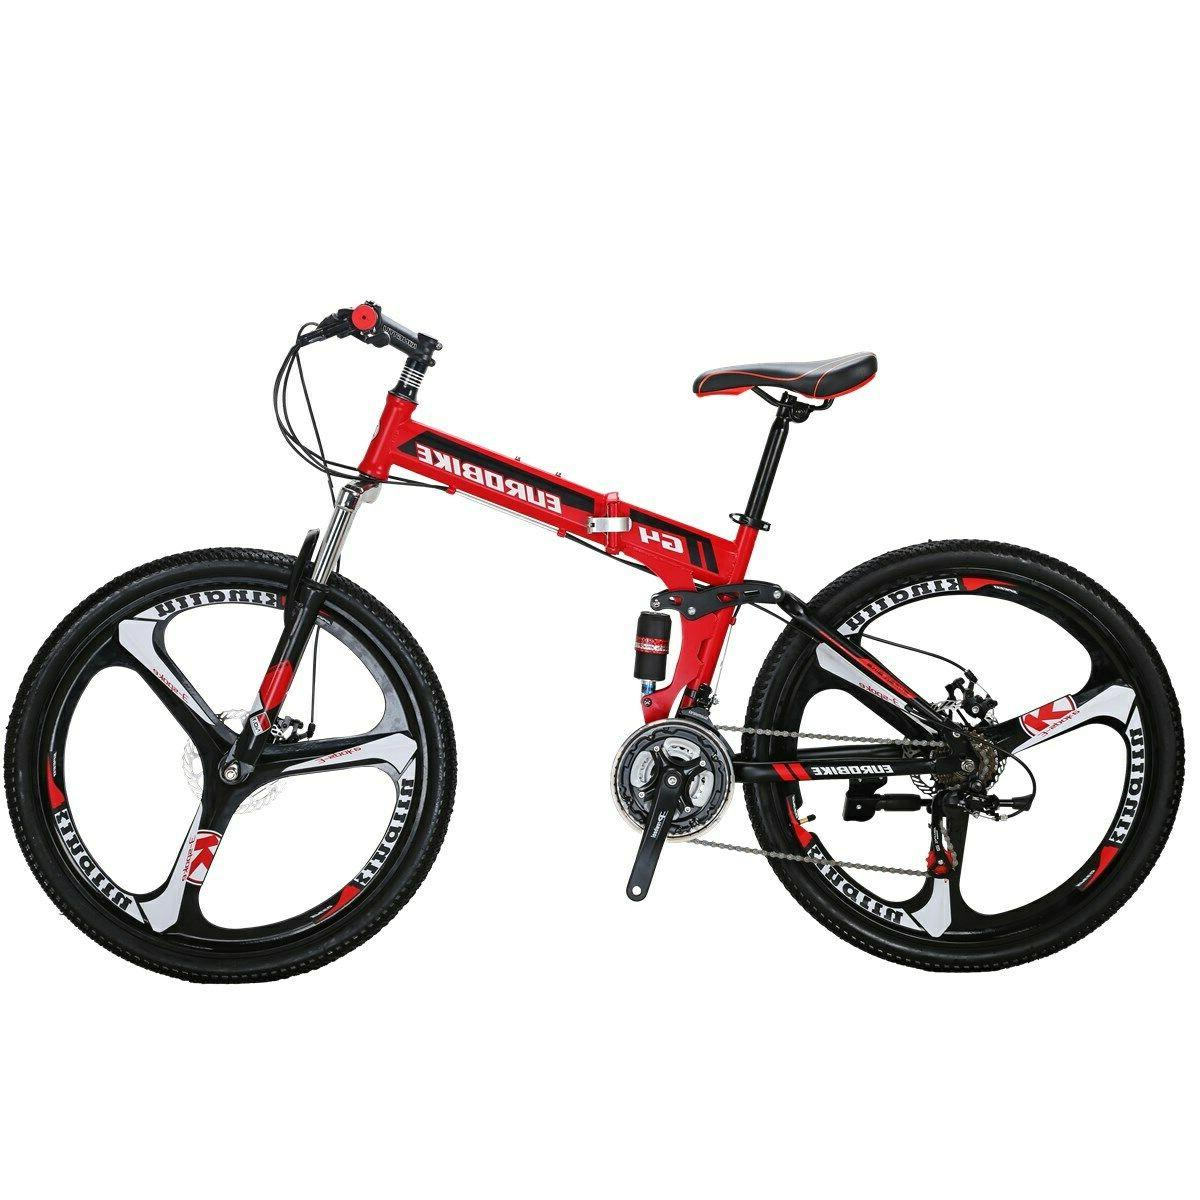 26 folding mountain bike shimano 21 speed